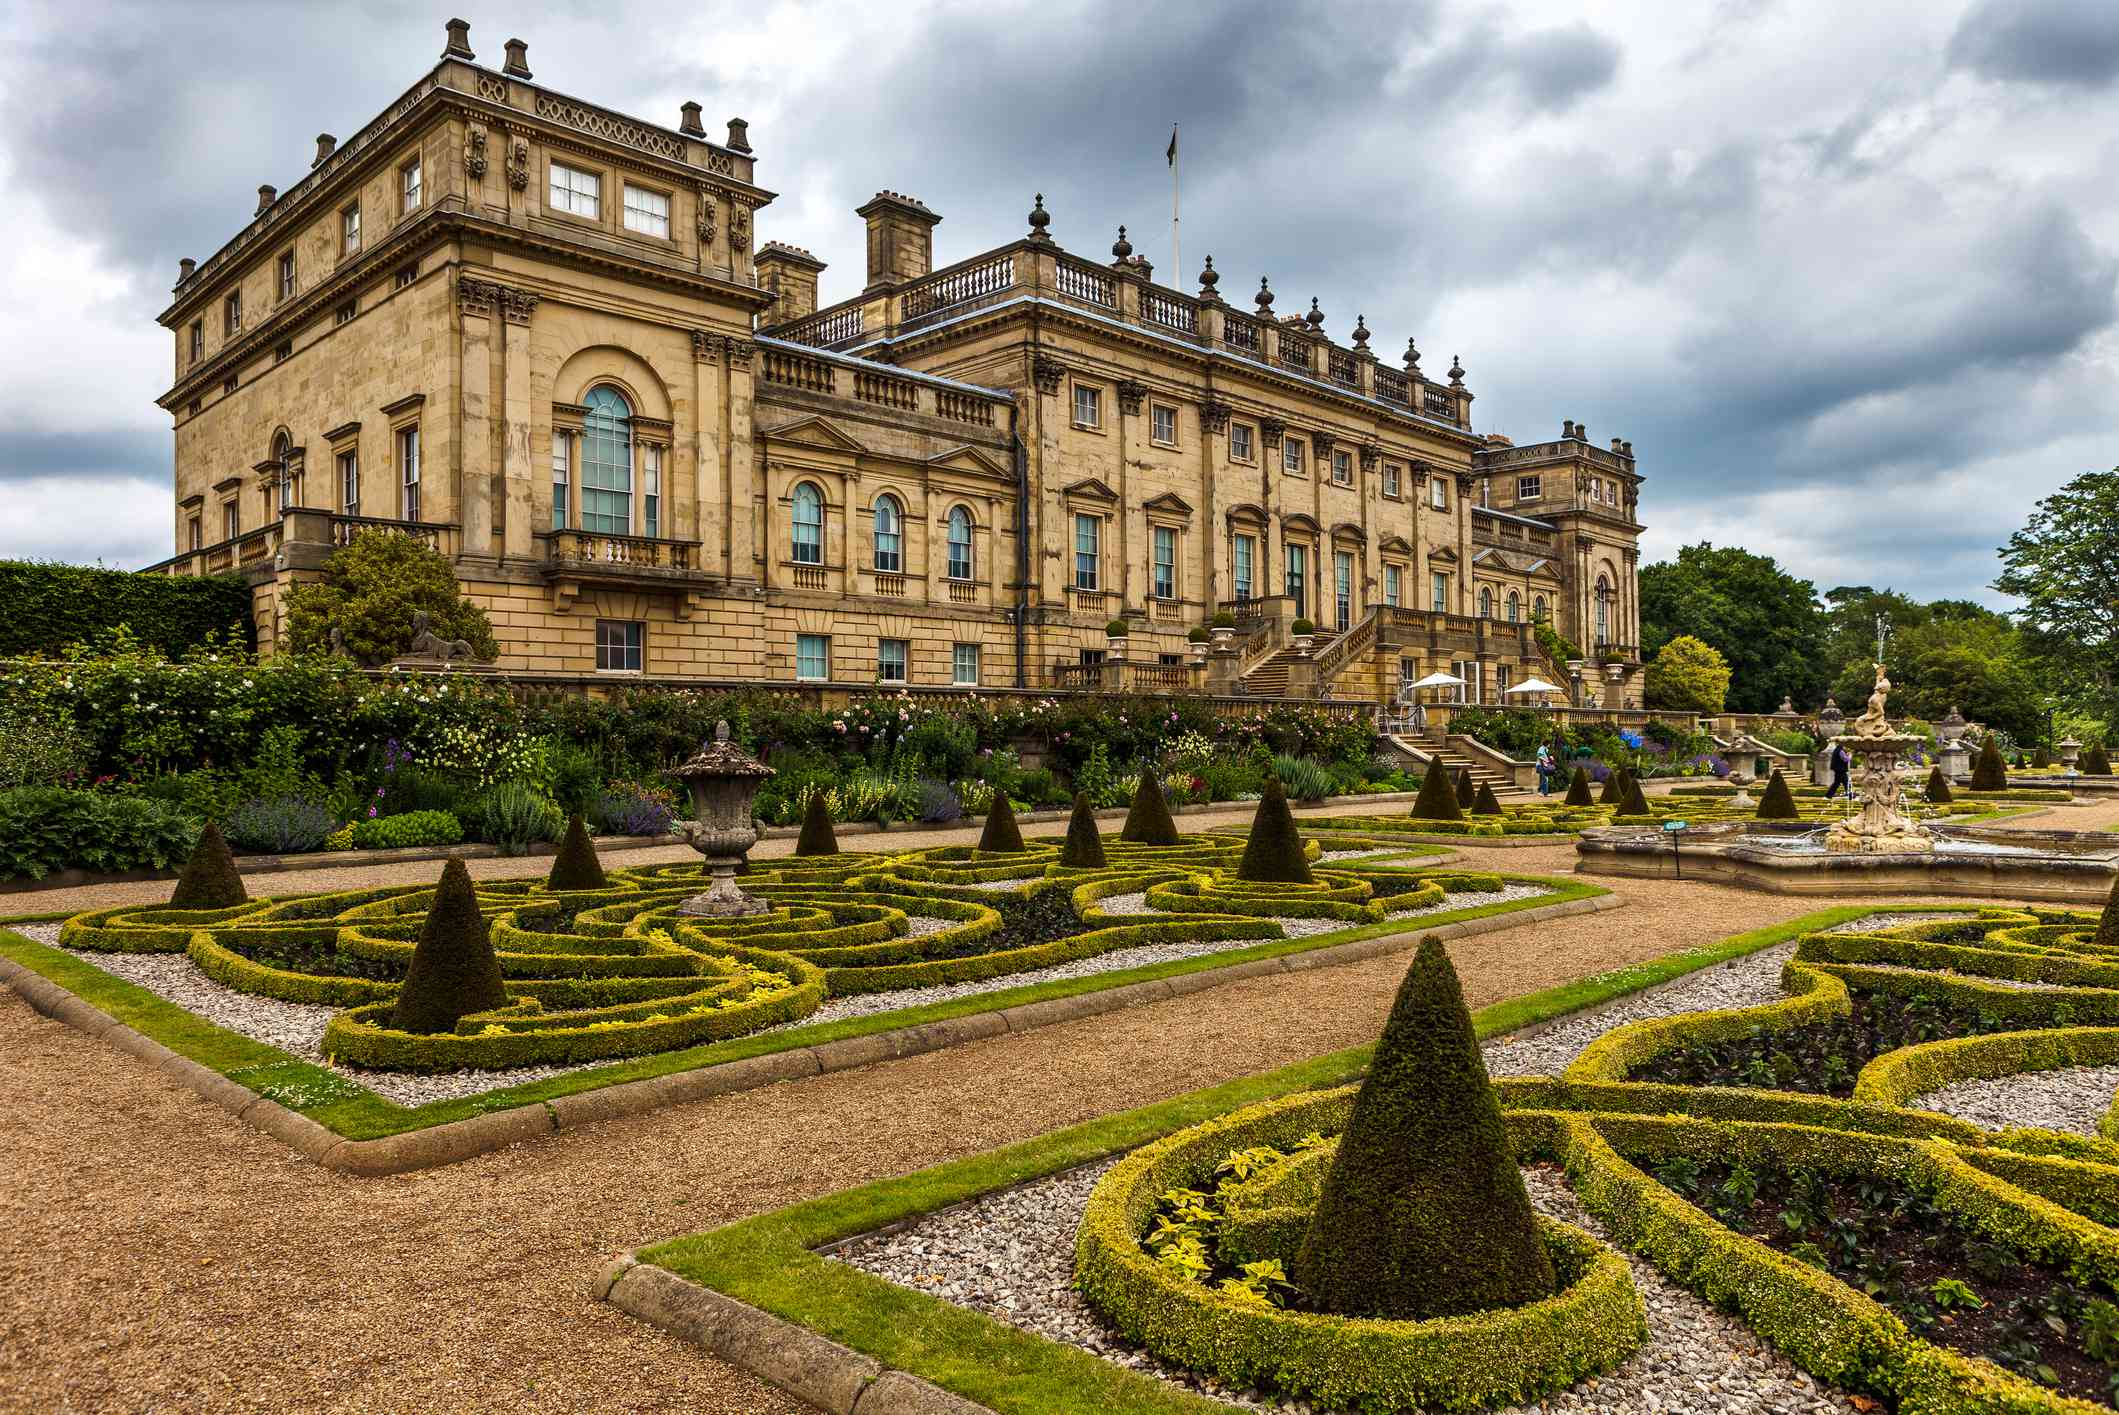 Harewood House and it's manicured shrubs on an overcast day